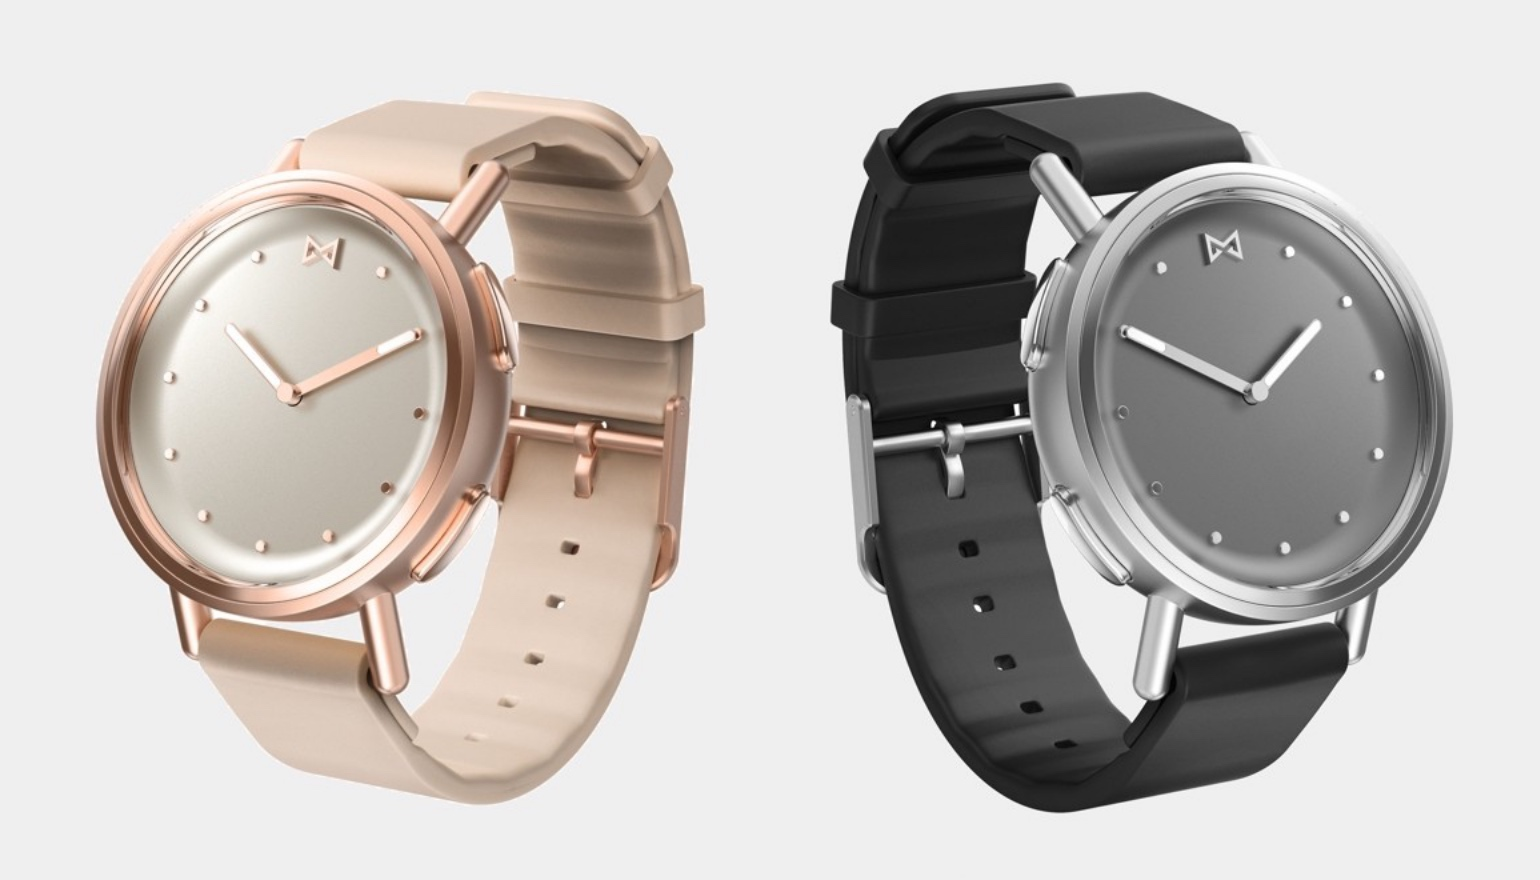 De Misfith Path is een elegante hybride smartwatch